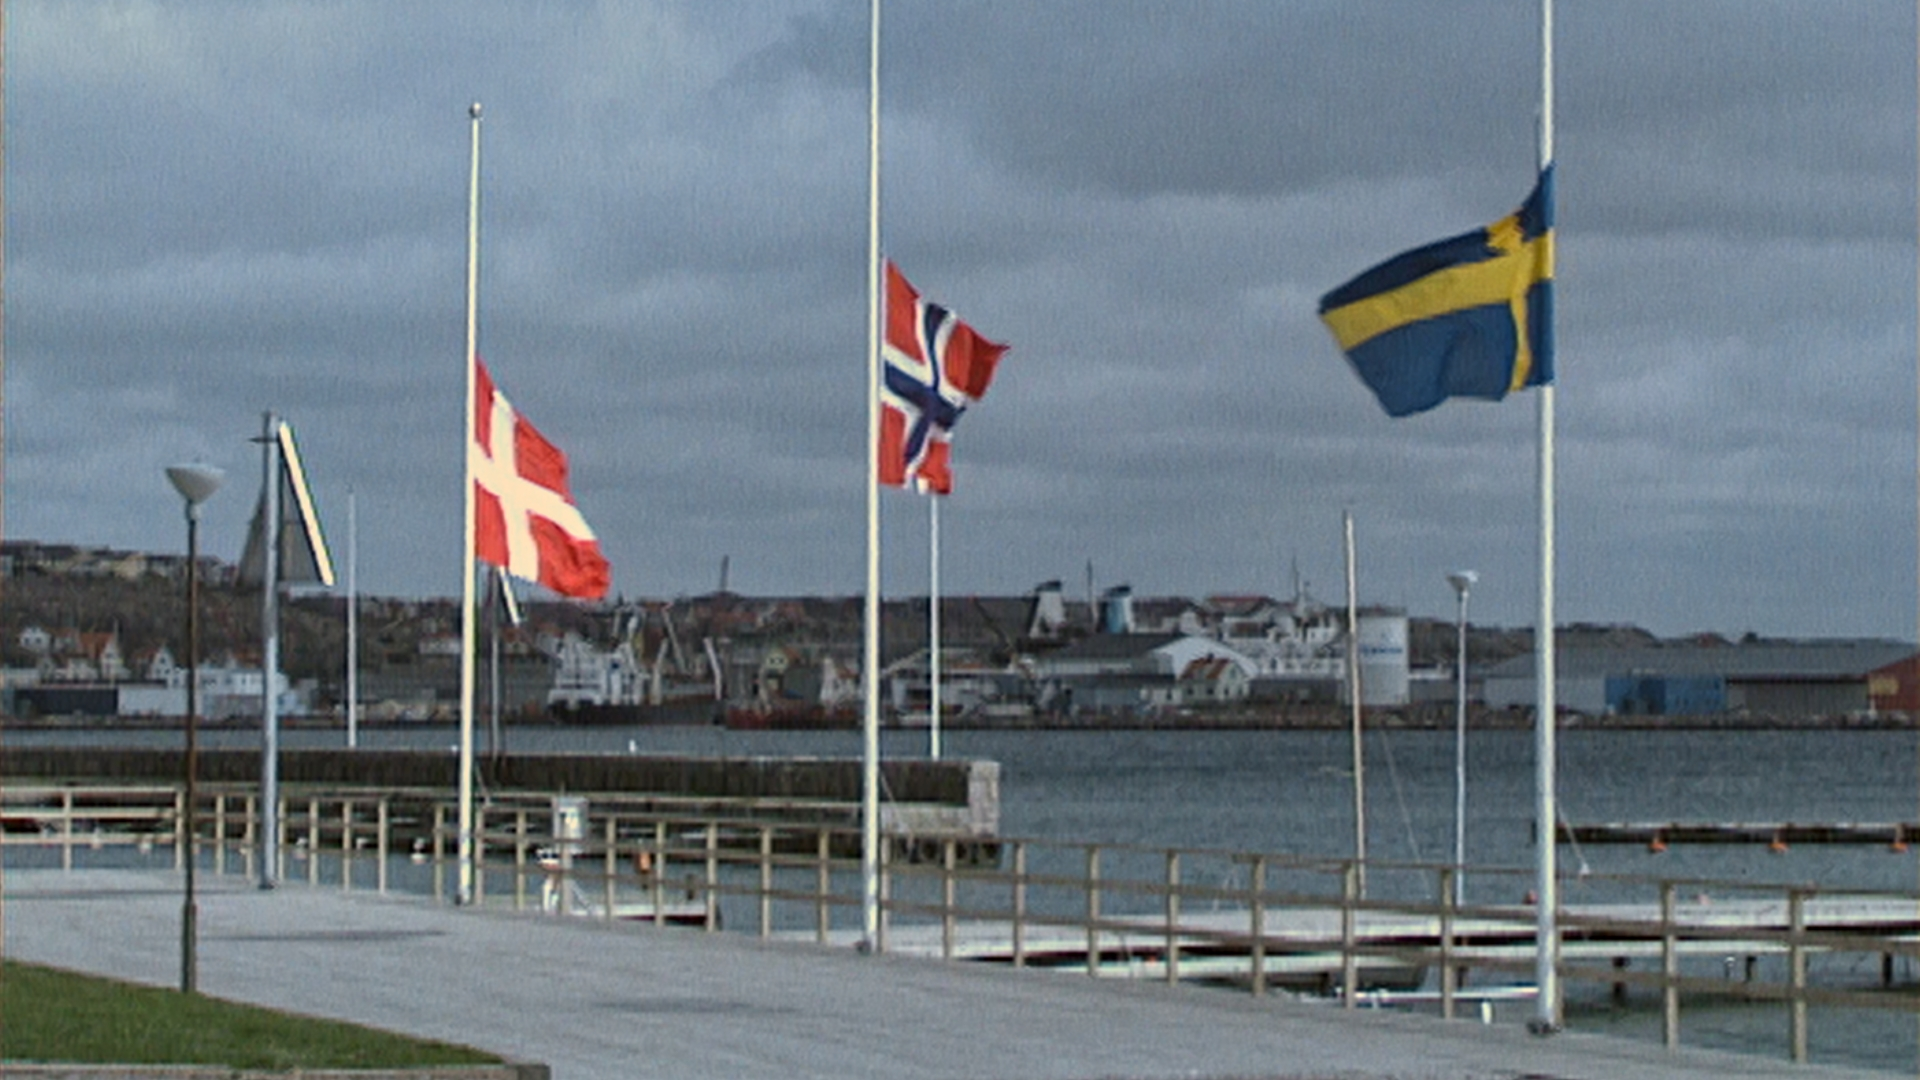 C NY_EP1_STILL_1920x1080_Habour Lysekil SE_ Photo by Informationsbolaget.jpg